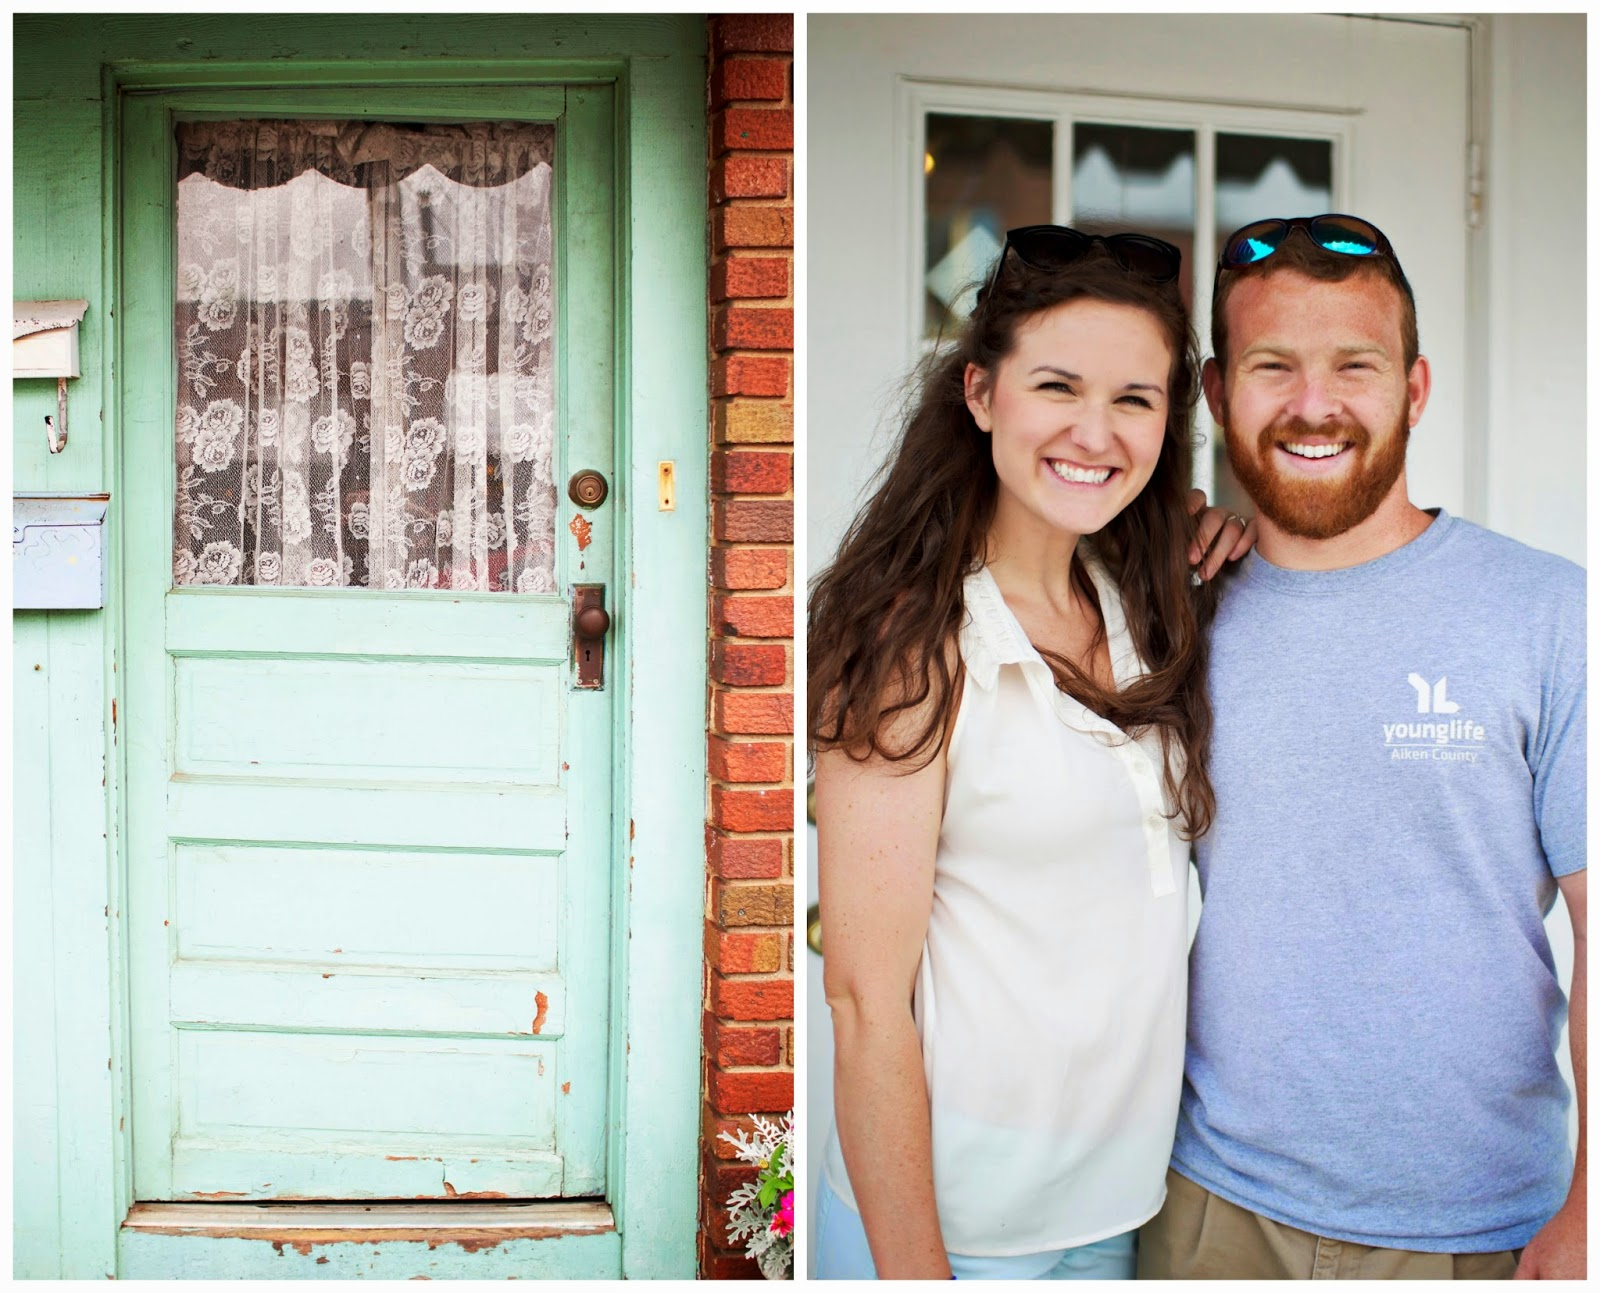 Our weekend in Black Mountain, NC via Love Lola